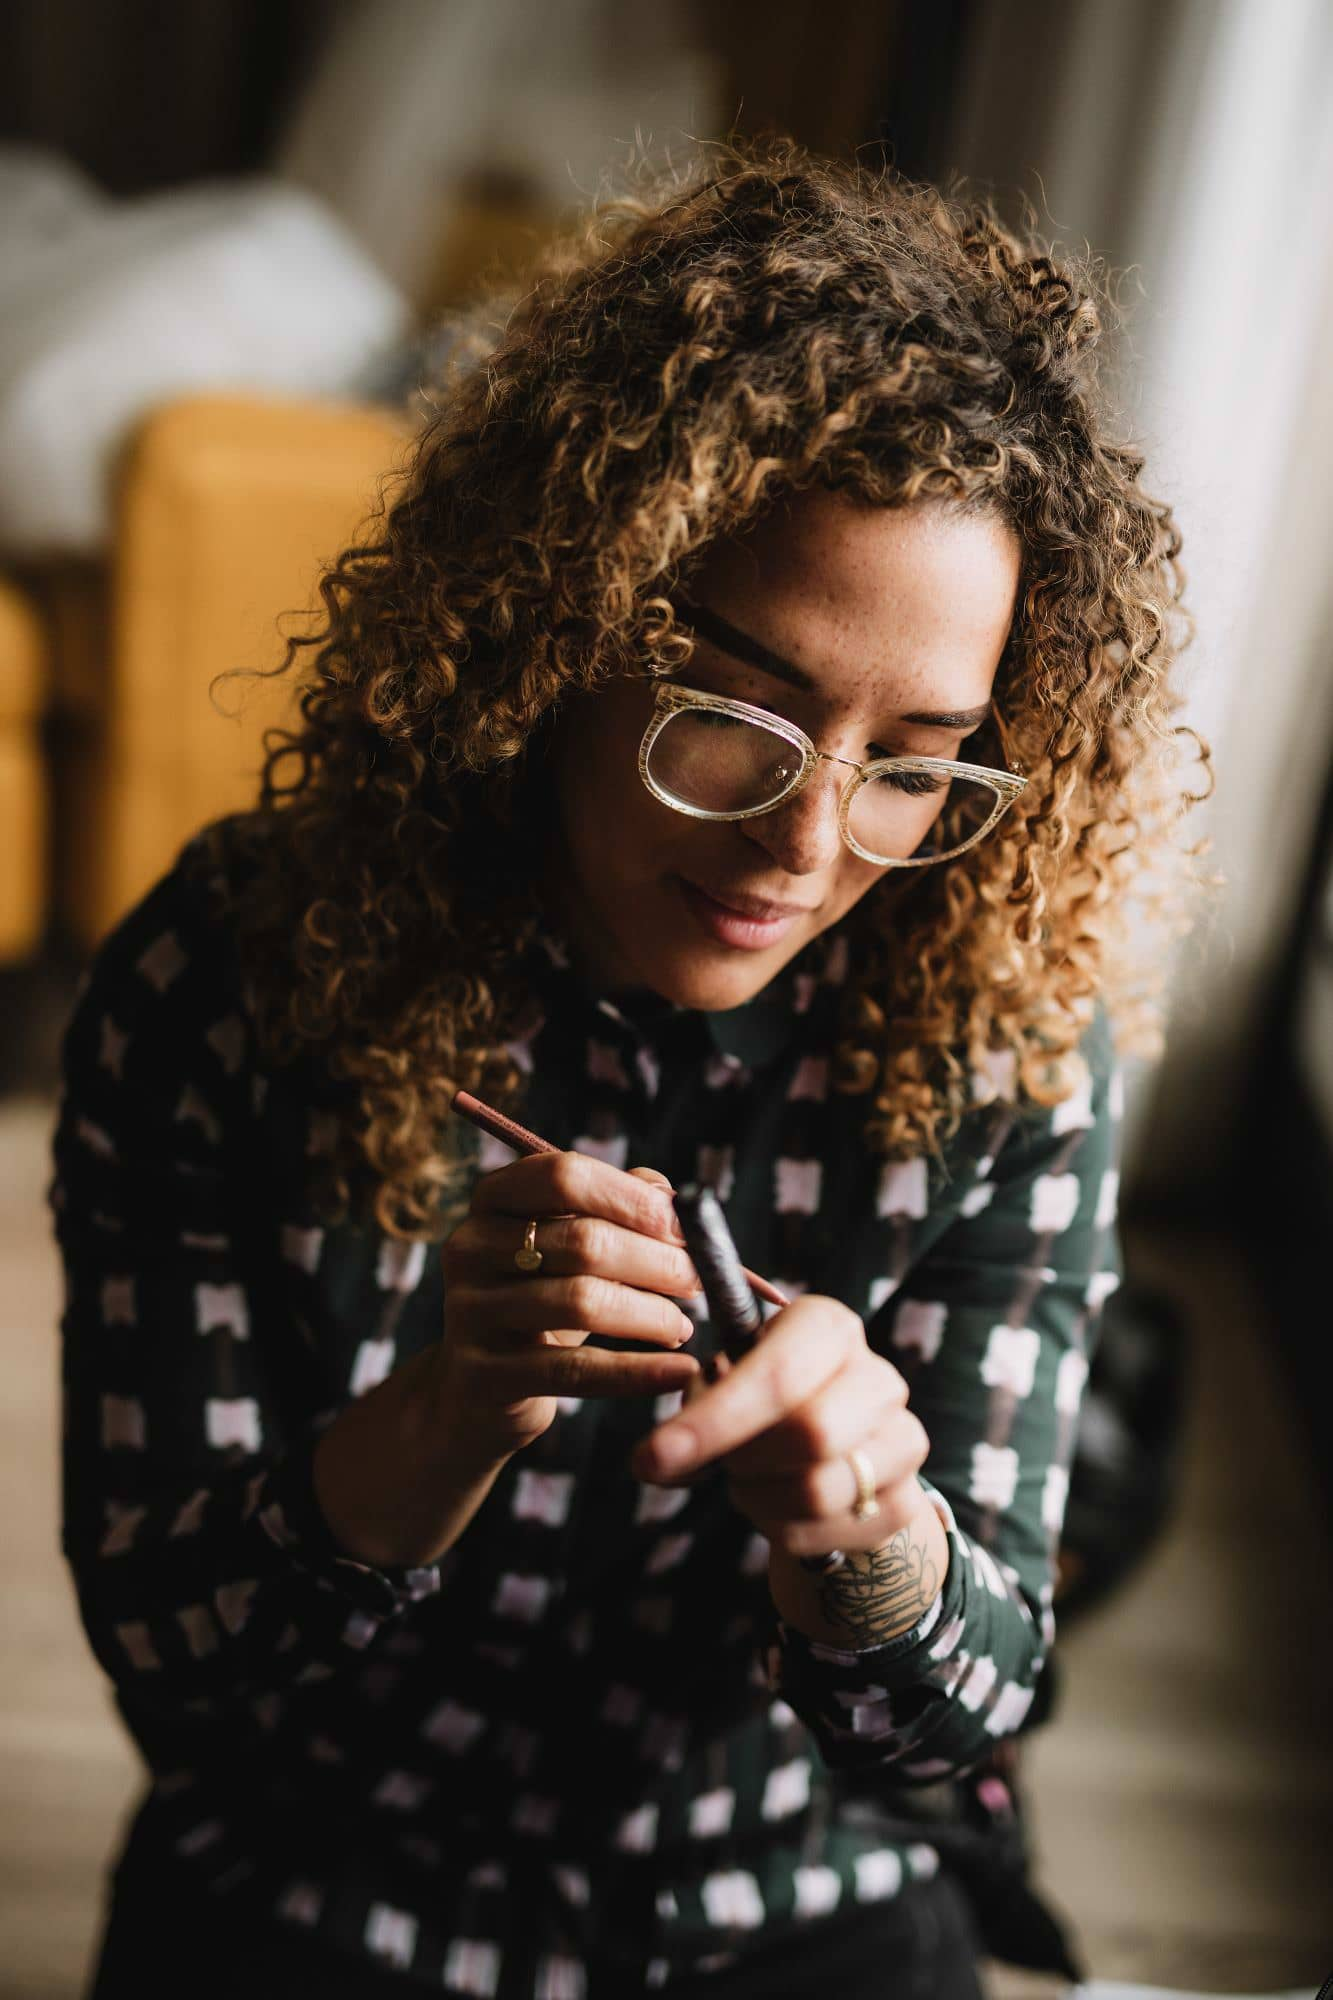 makeup artist with gold curly hair working with her tools